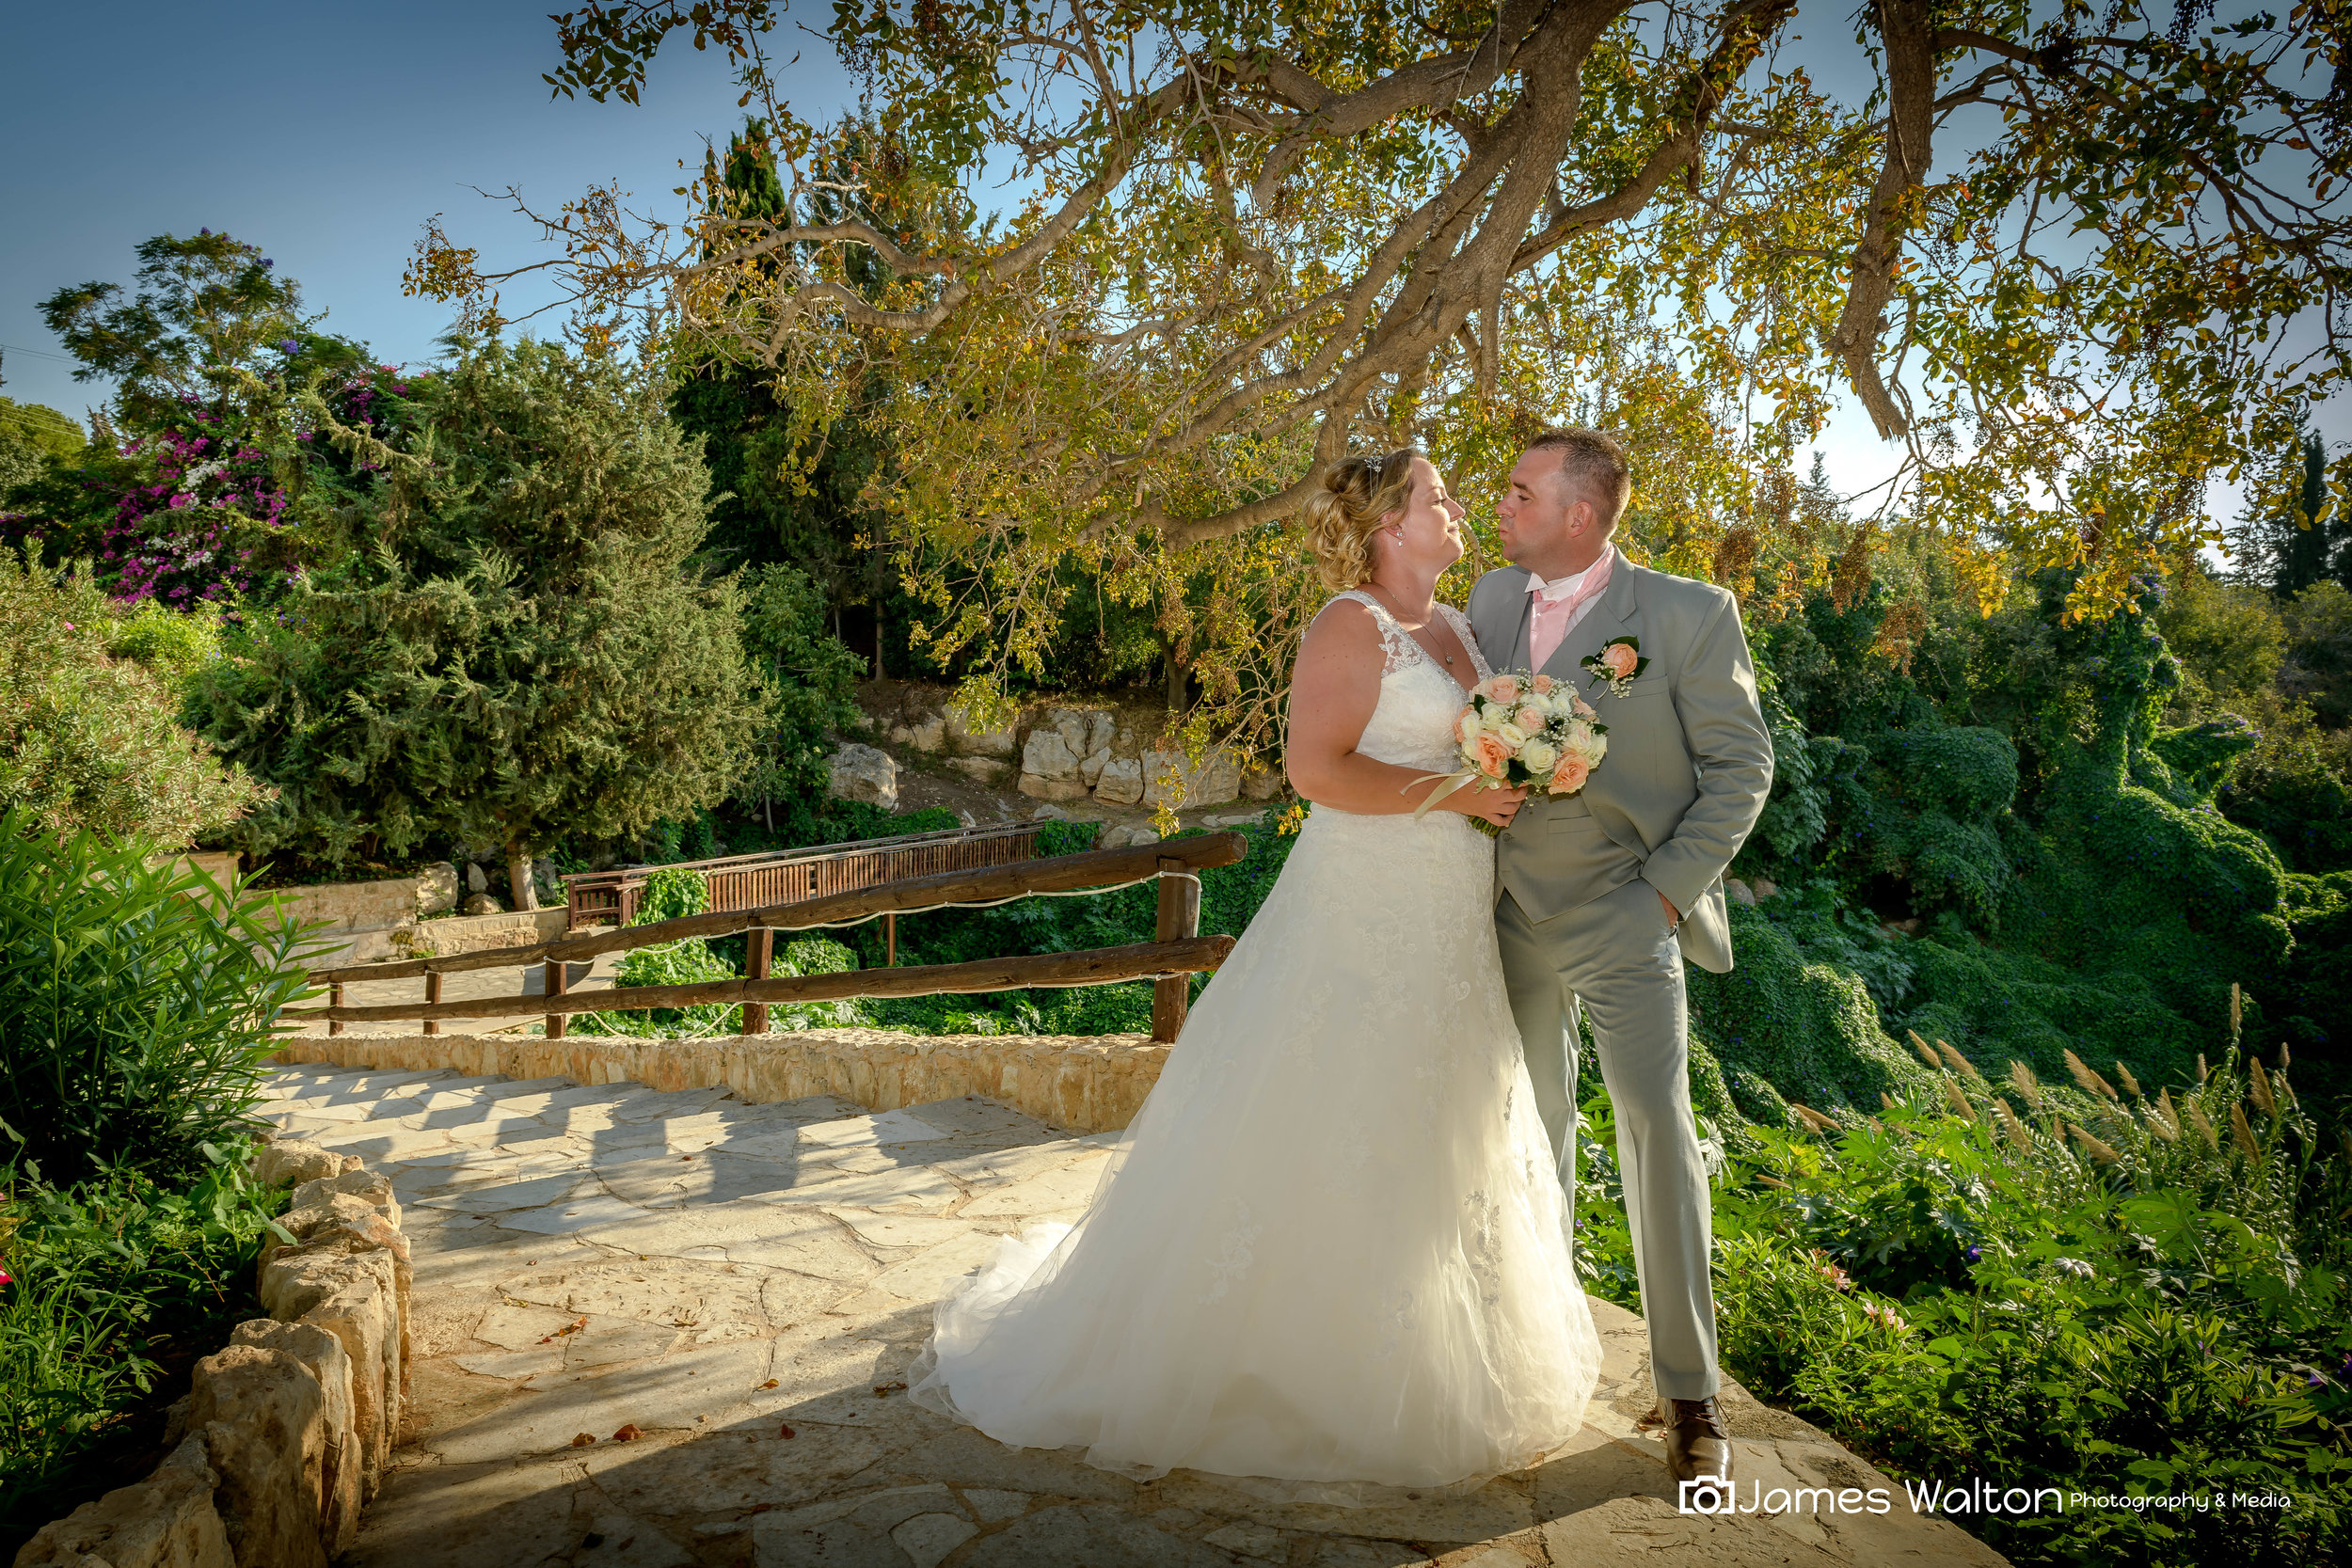 James and Mike were very professional and made us laugh throughout. They were also our witnesses and made the day stress free. Amazing pictures capturing our day, made the whole experience a pleasure. Thoroughly recommend. - Kelly Dell October 2018